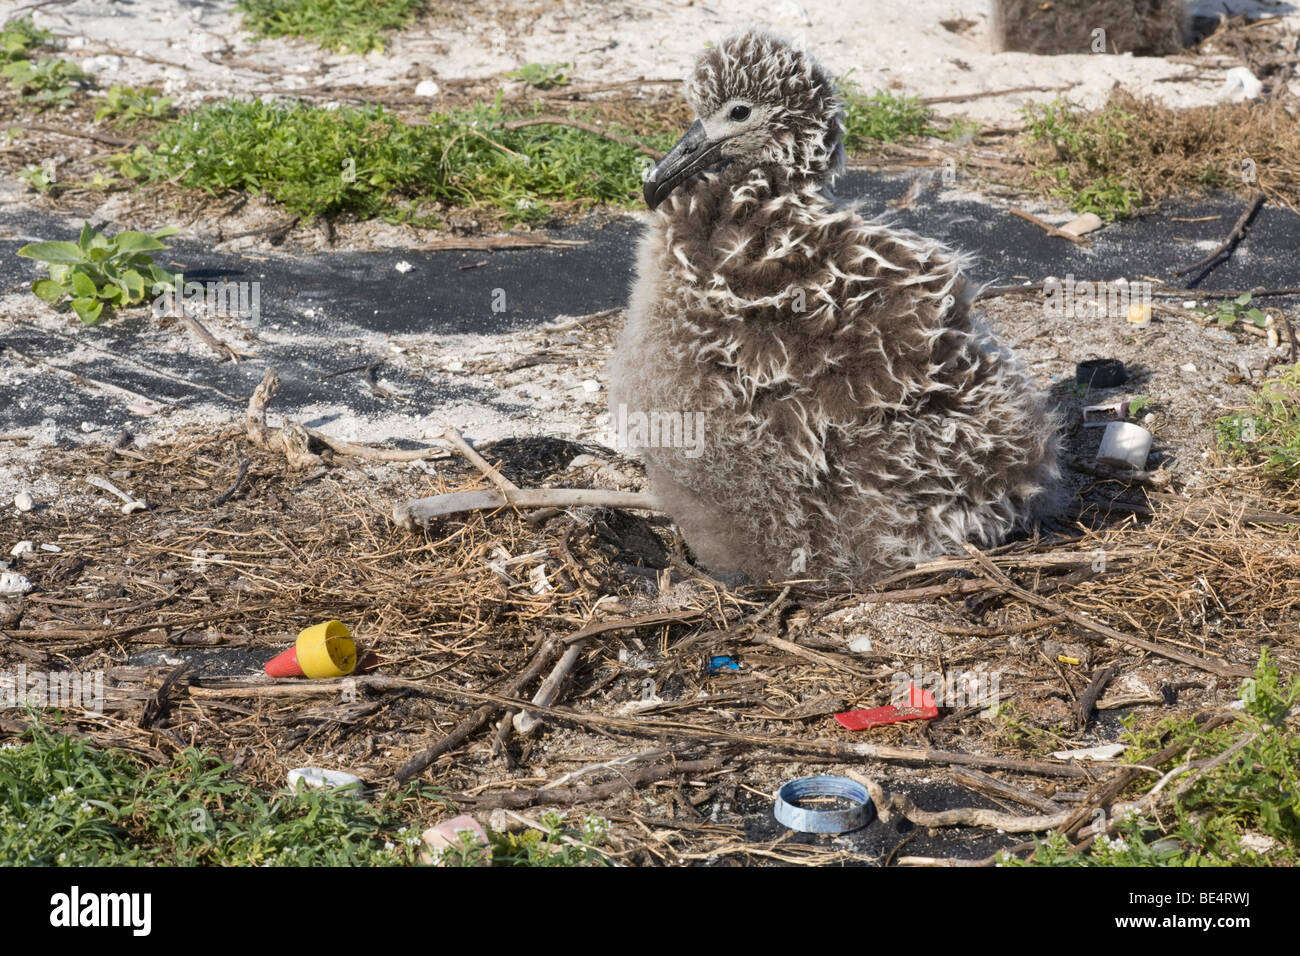 Laysan Albatross chick with plastic remaining from the stomach of a dead bird that previously ingested the debris, Midway Atoll Stock Photo